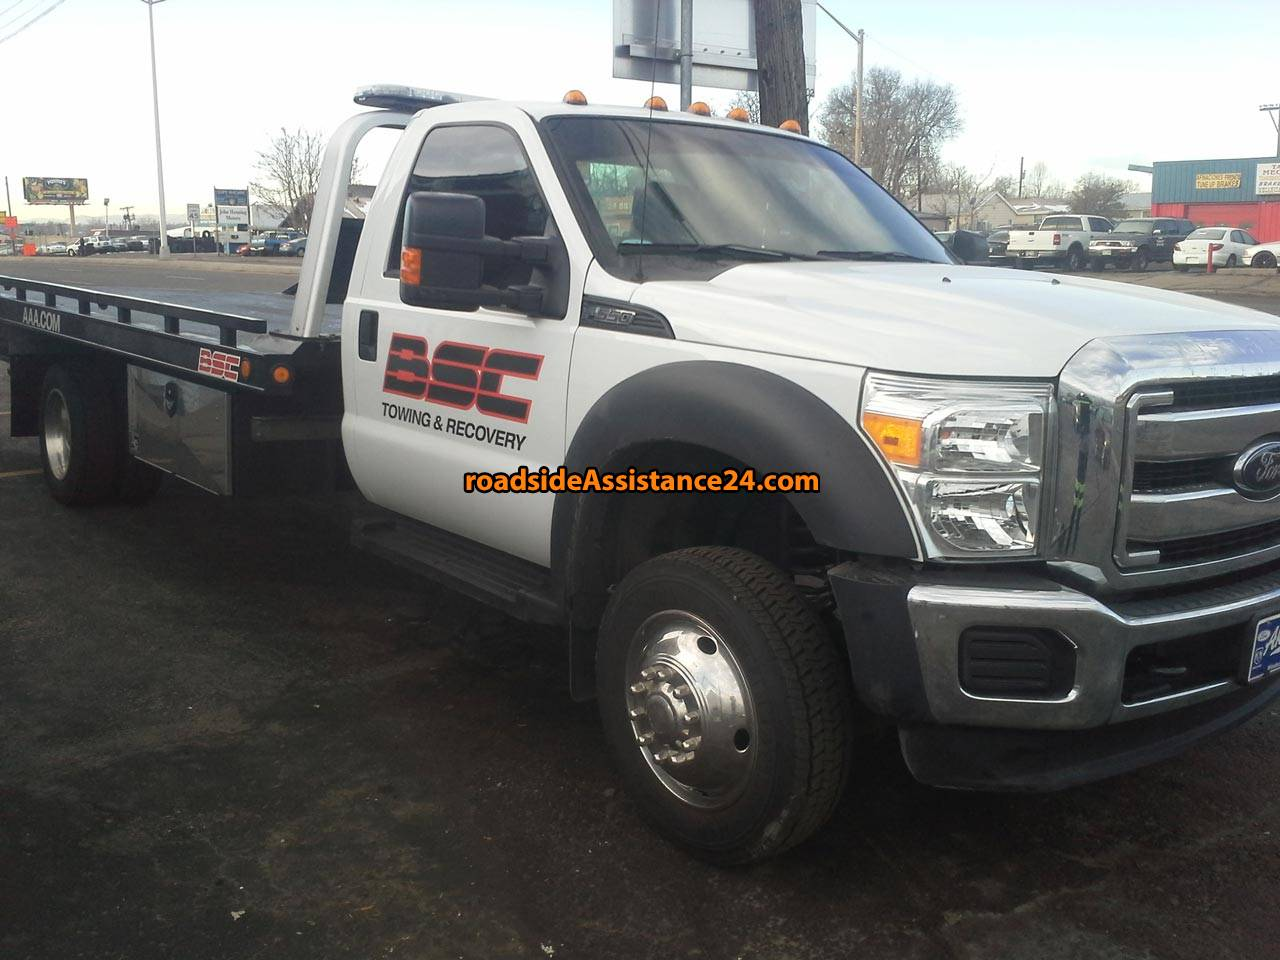 BSC Towing & Recovery